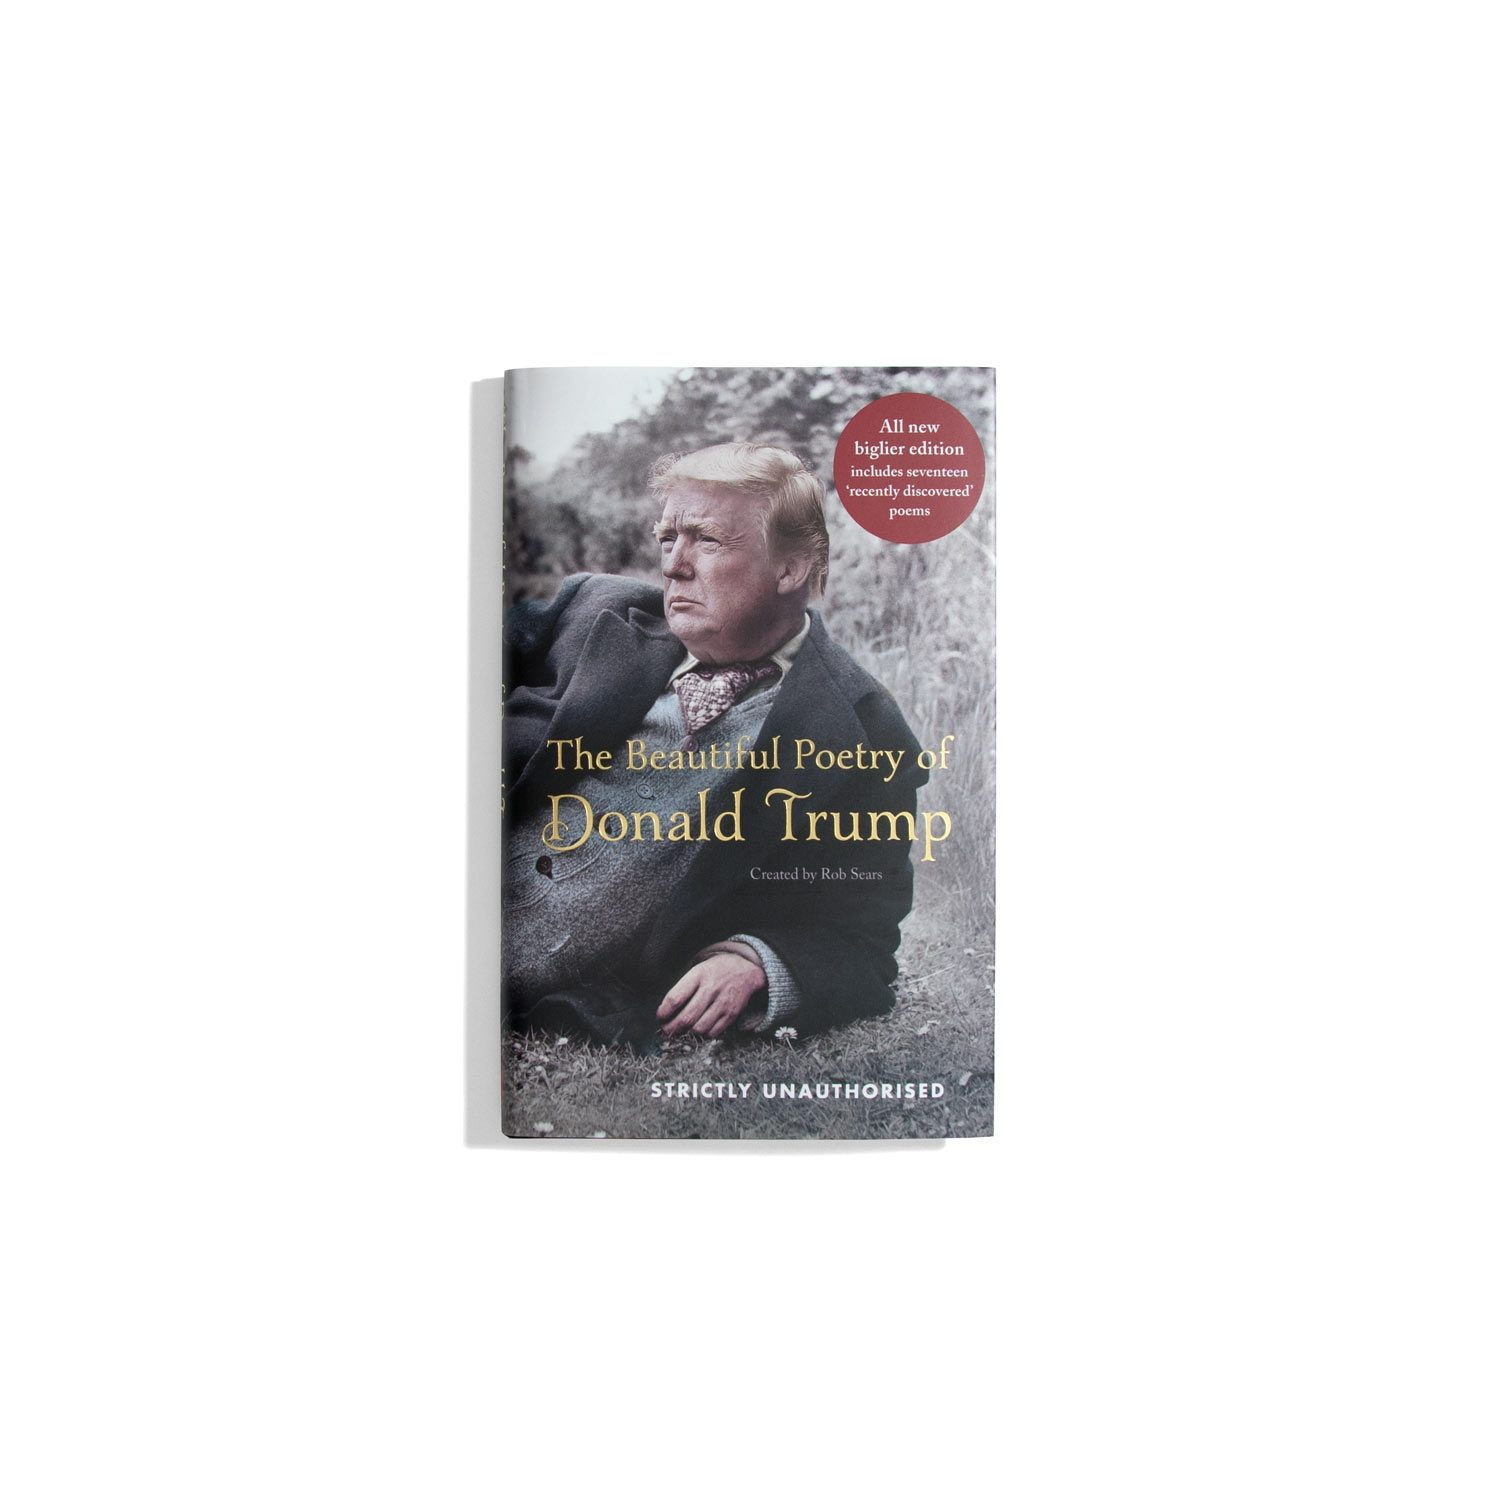 The Beautiful Poetry of Donald Trump - Rob Sears